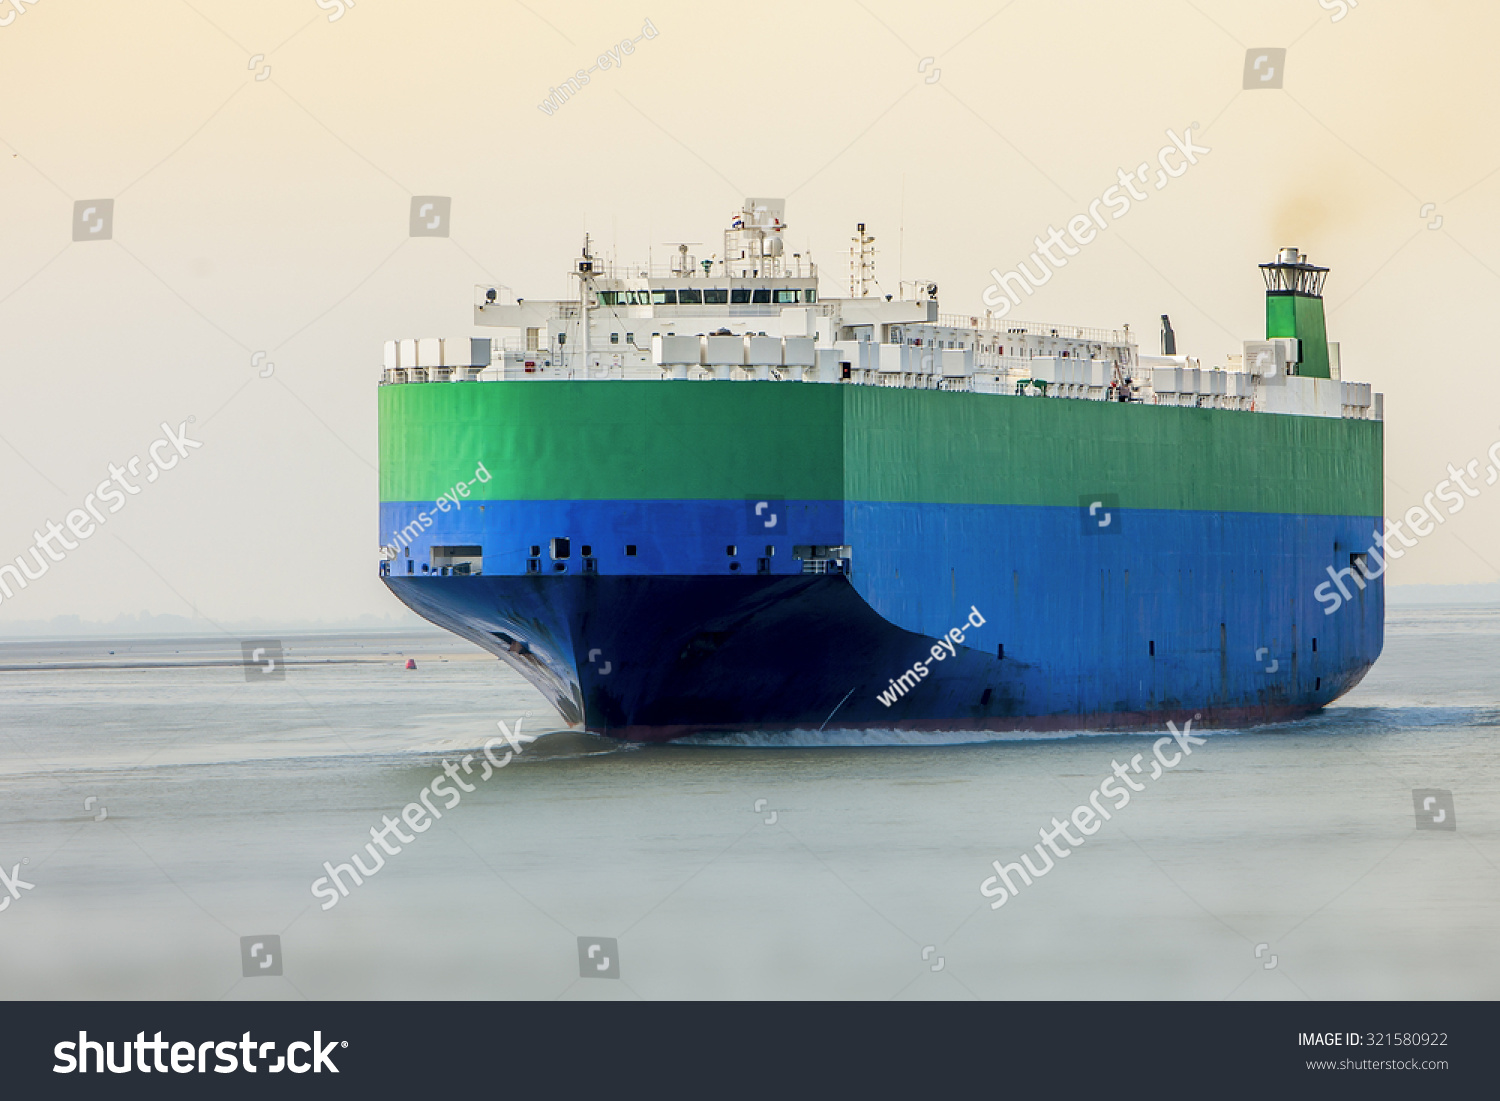 large roro carrier ship import overseas stock photo 321580922 shutterstock. Black Bedroom Furniture Sets. Home Design Ideas